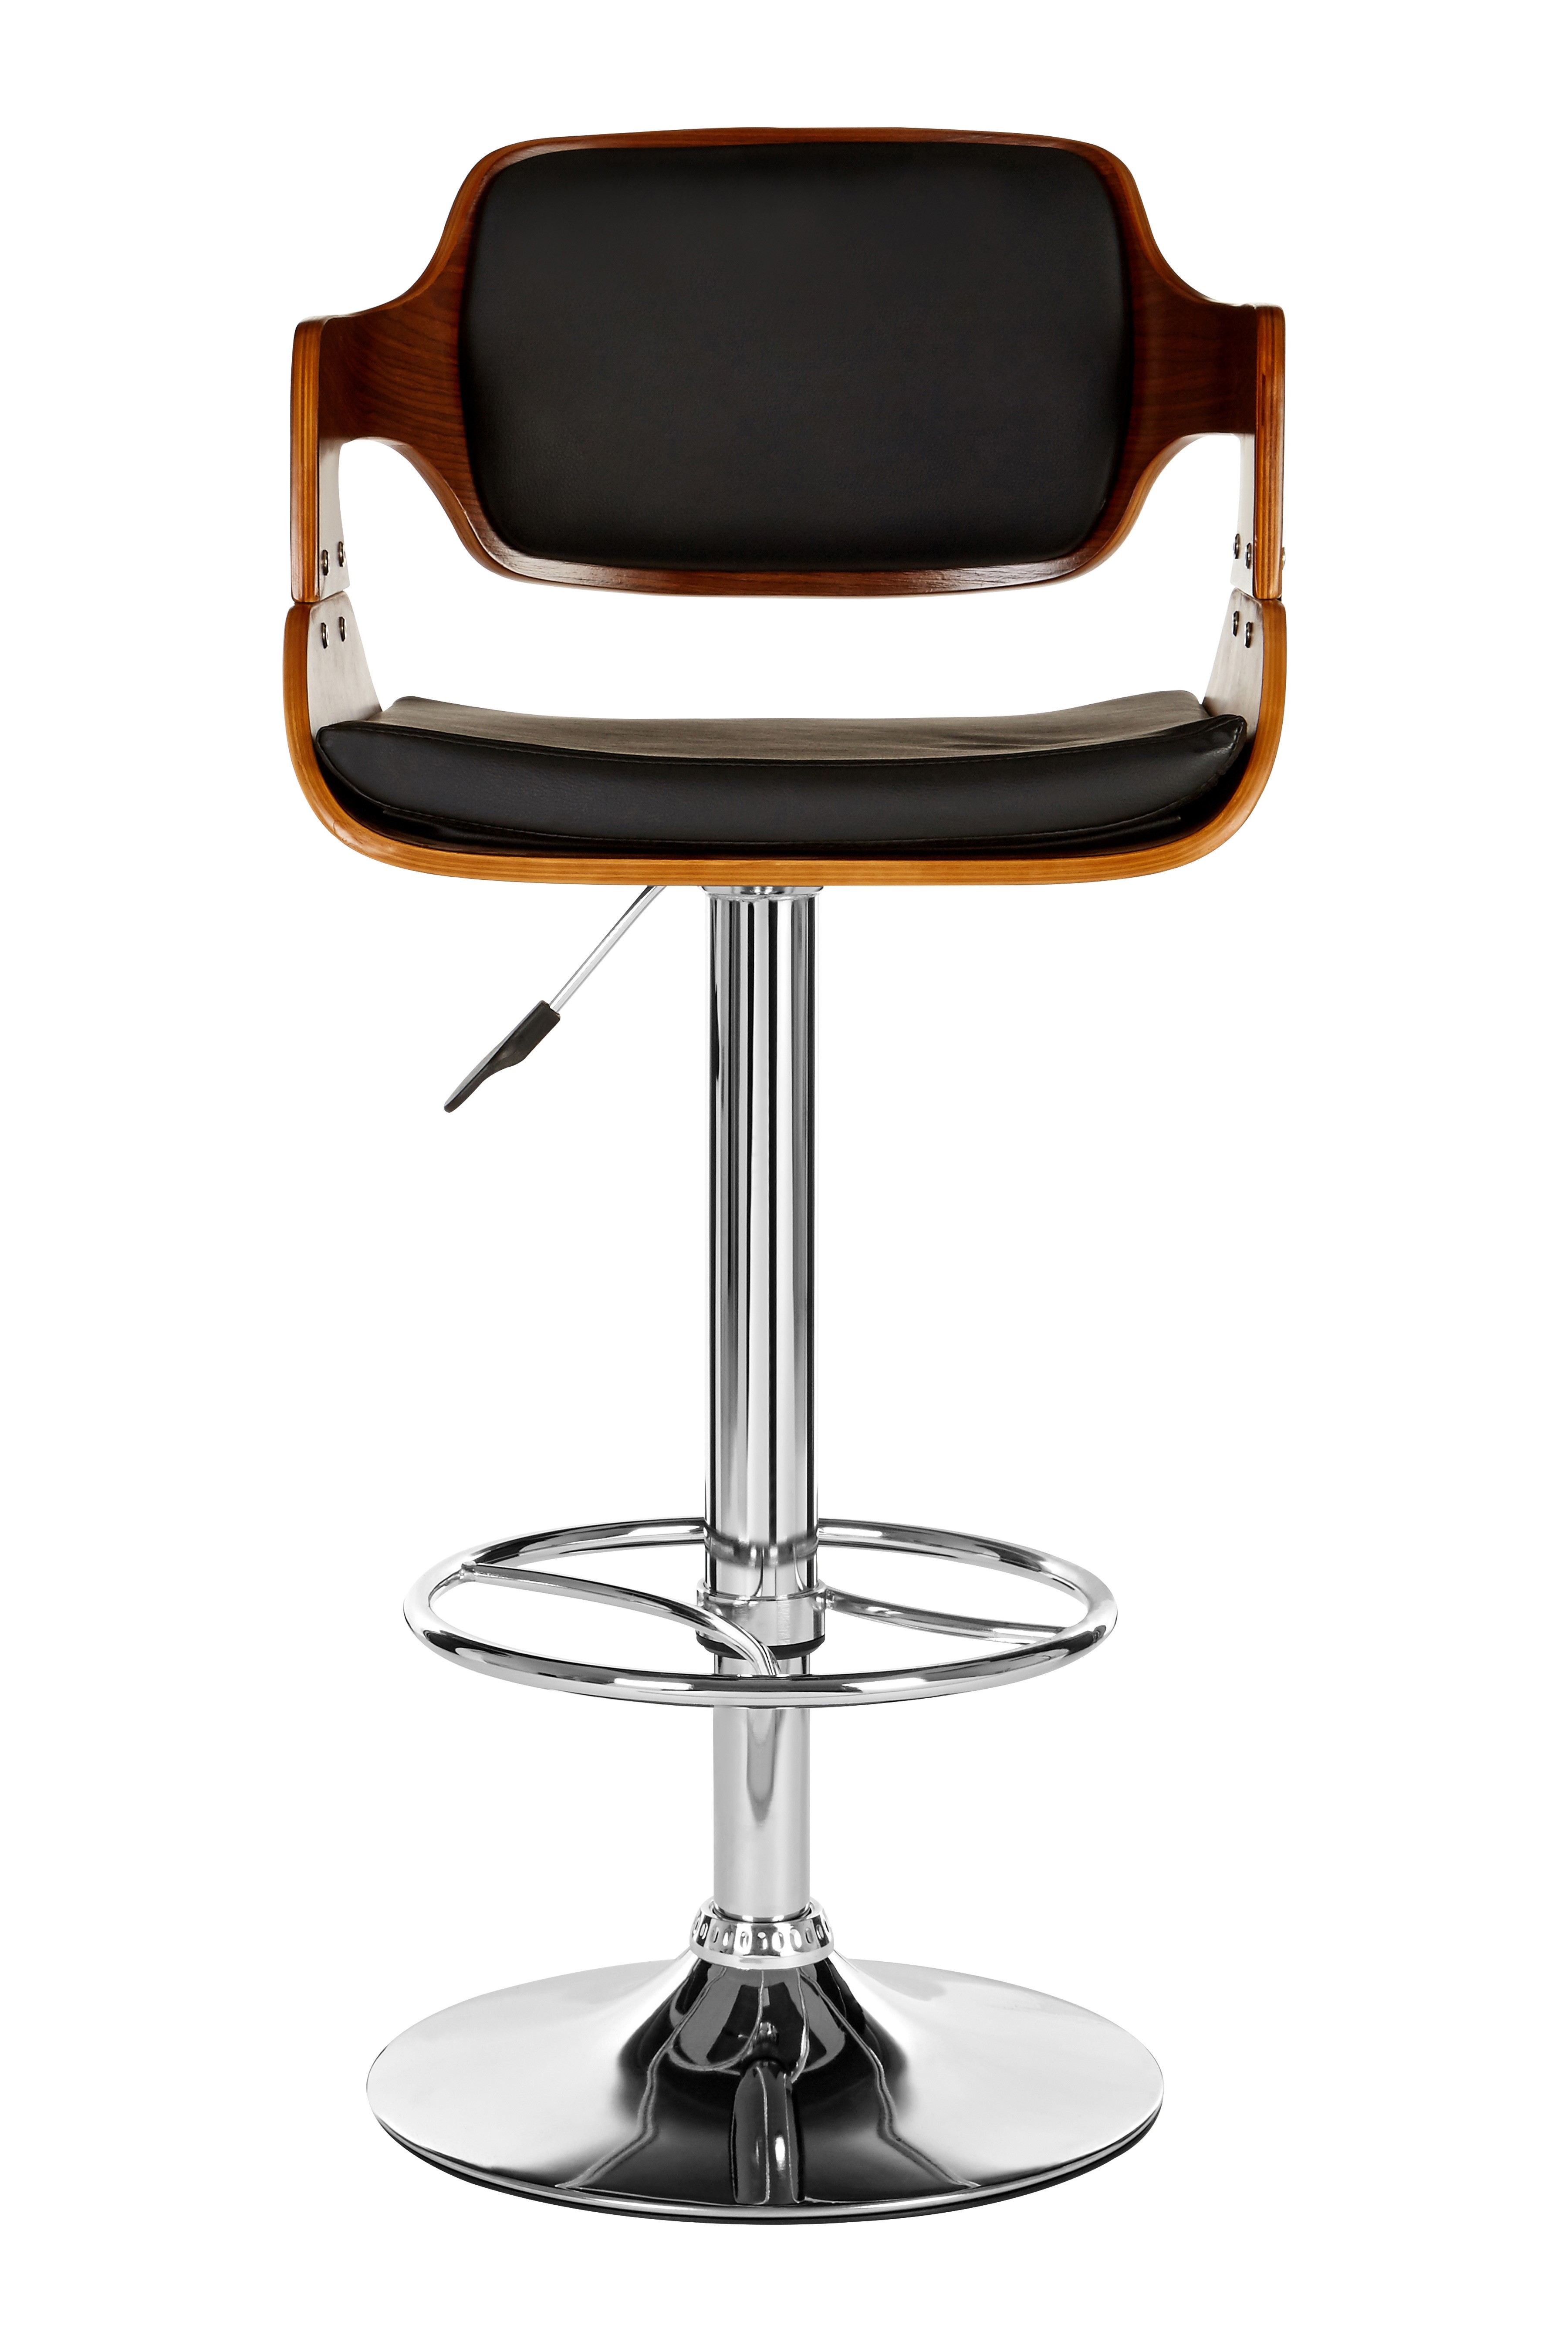 Walnut Wood and Leather Effect Bar Chair - Black